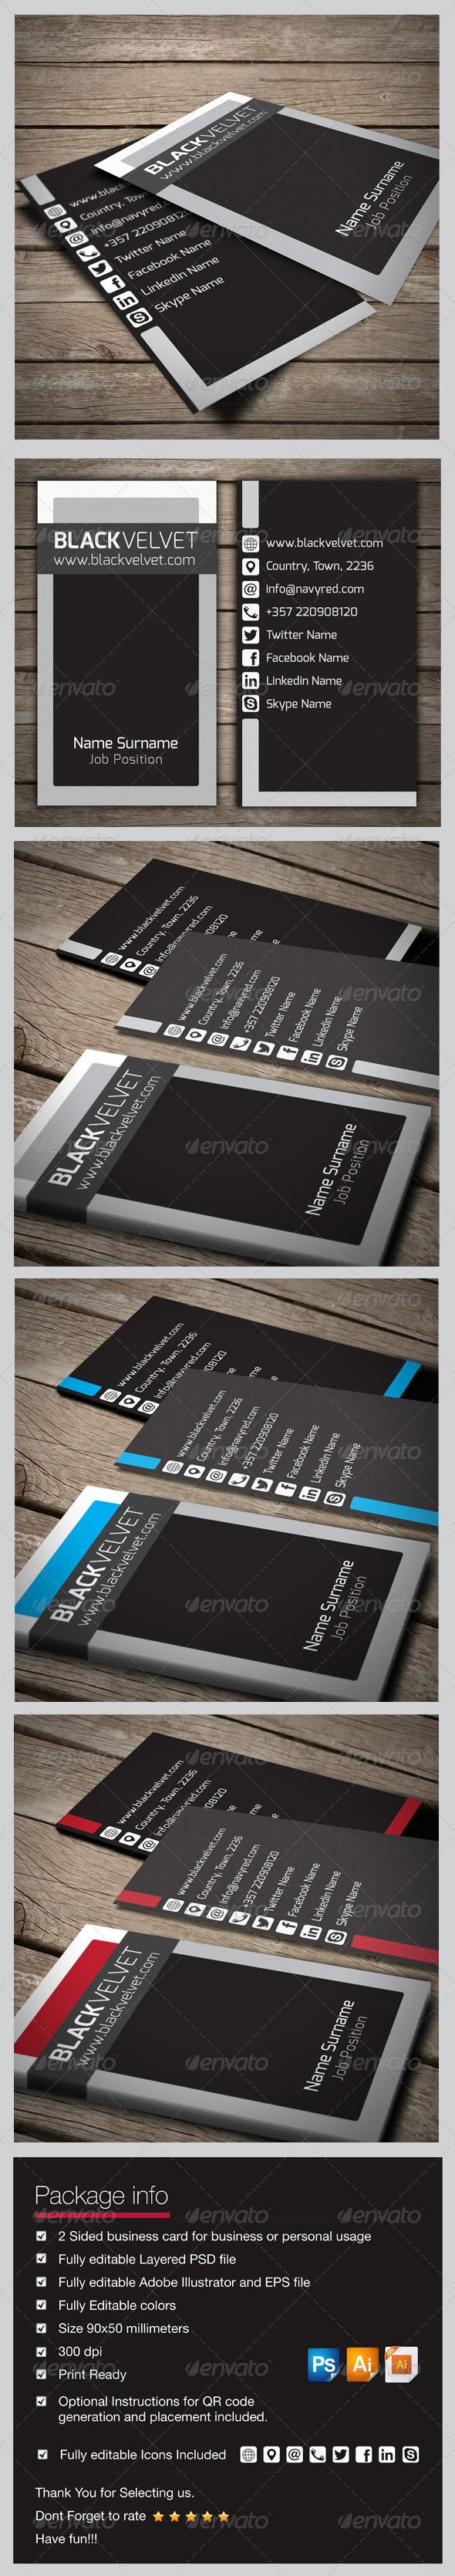 New collection of cheap business cards and flyers business cards 86 best print templates images on pinterest 86 best print templates images on pinterest from cheap business cards and flyers magicingreecefo Image collections